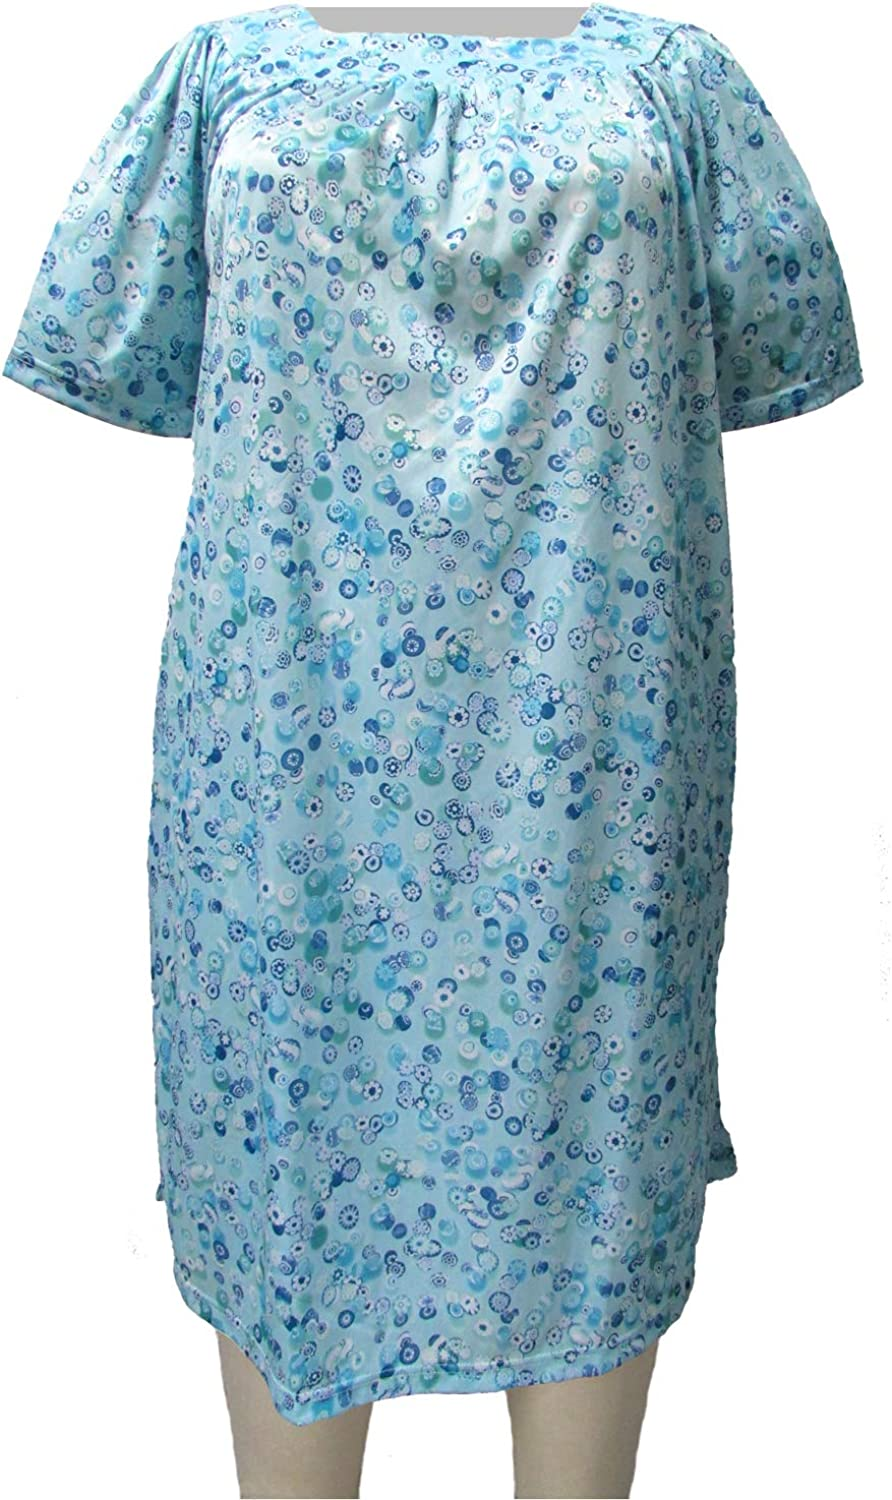 A Personal Touch Womens Plus Size Square Neck Lounging Dress